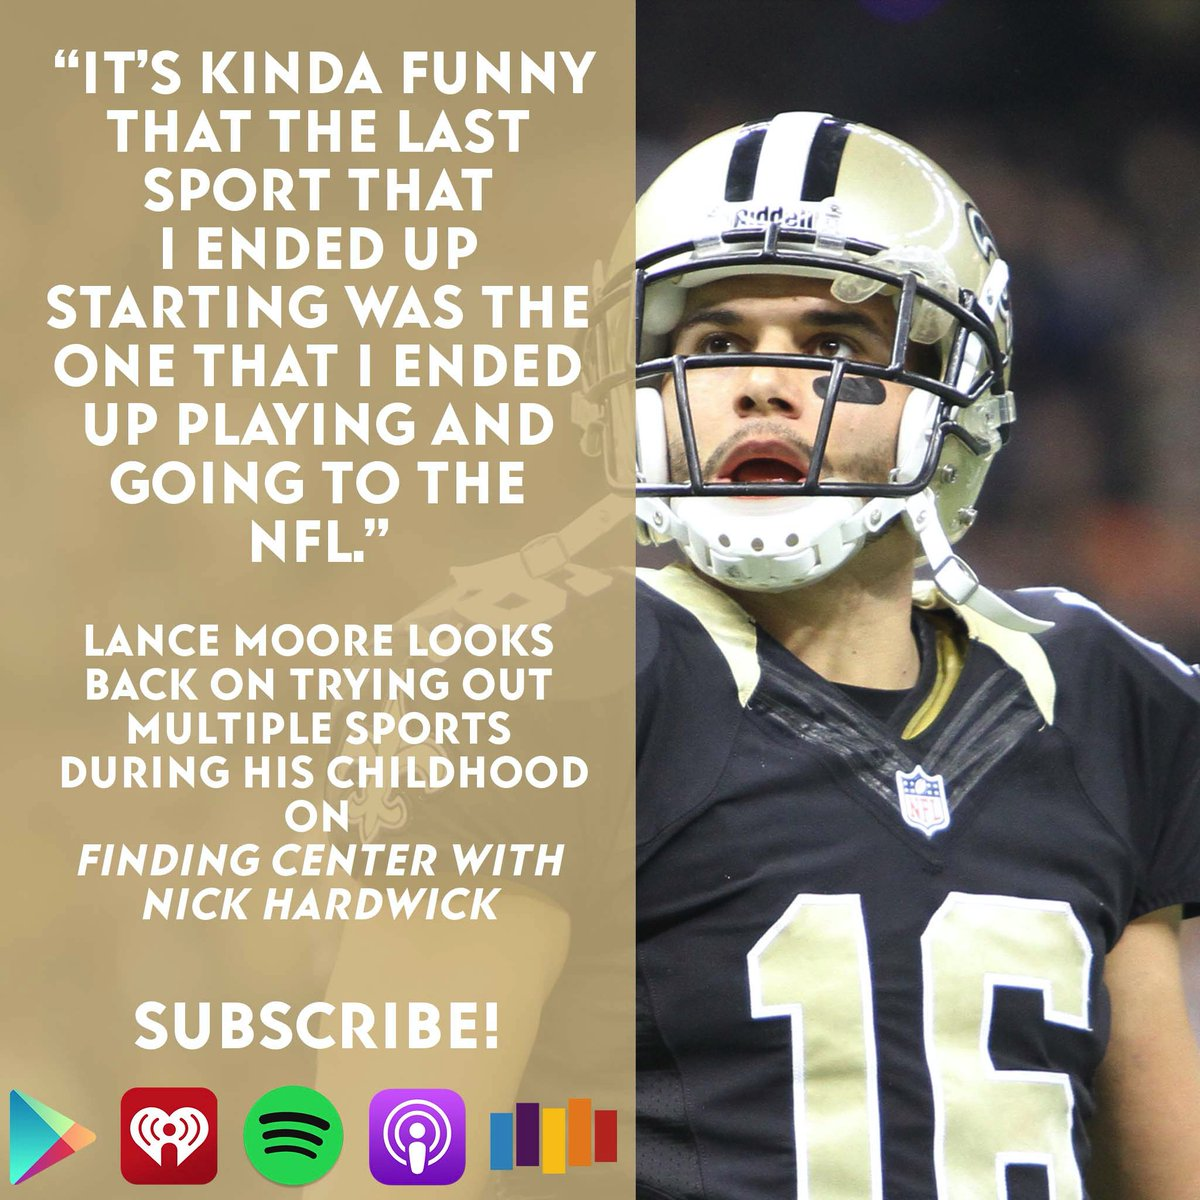 Did you know Super Bowl champion @LanceMoore16 got his black belt in karate when he was a child? This week host @NickHardwick has Moore on the show for an episode you won't want to miss! Check out Finding Center with Nick Hardwick here: podcasts.apple.com/us/podcast/fin…